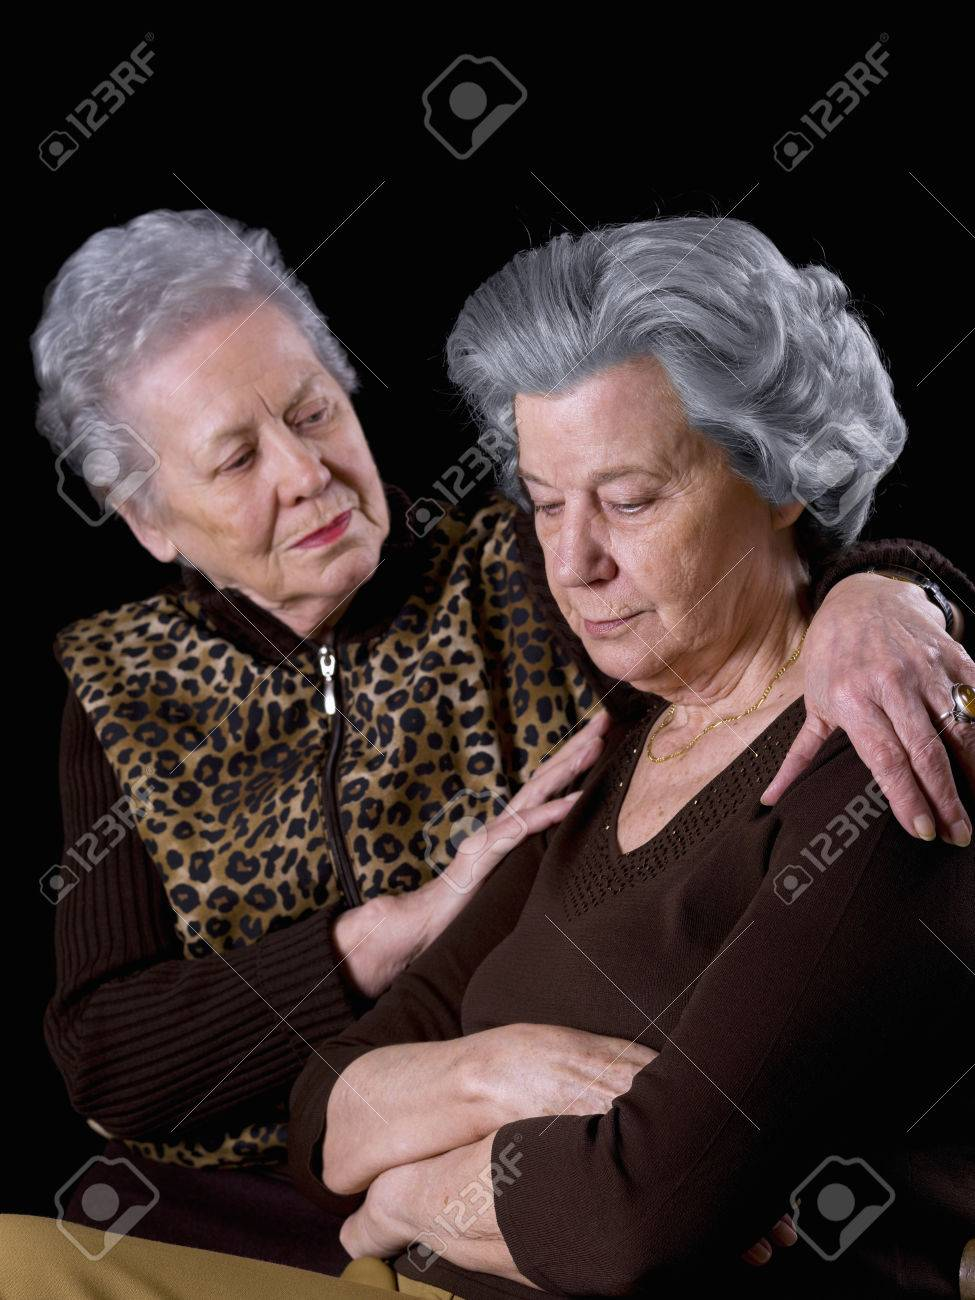 Old woman, comforting a friend - 38156319